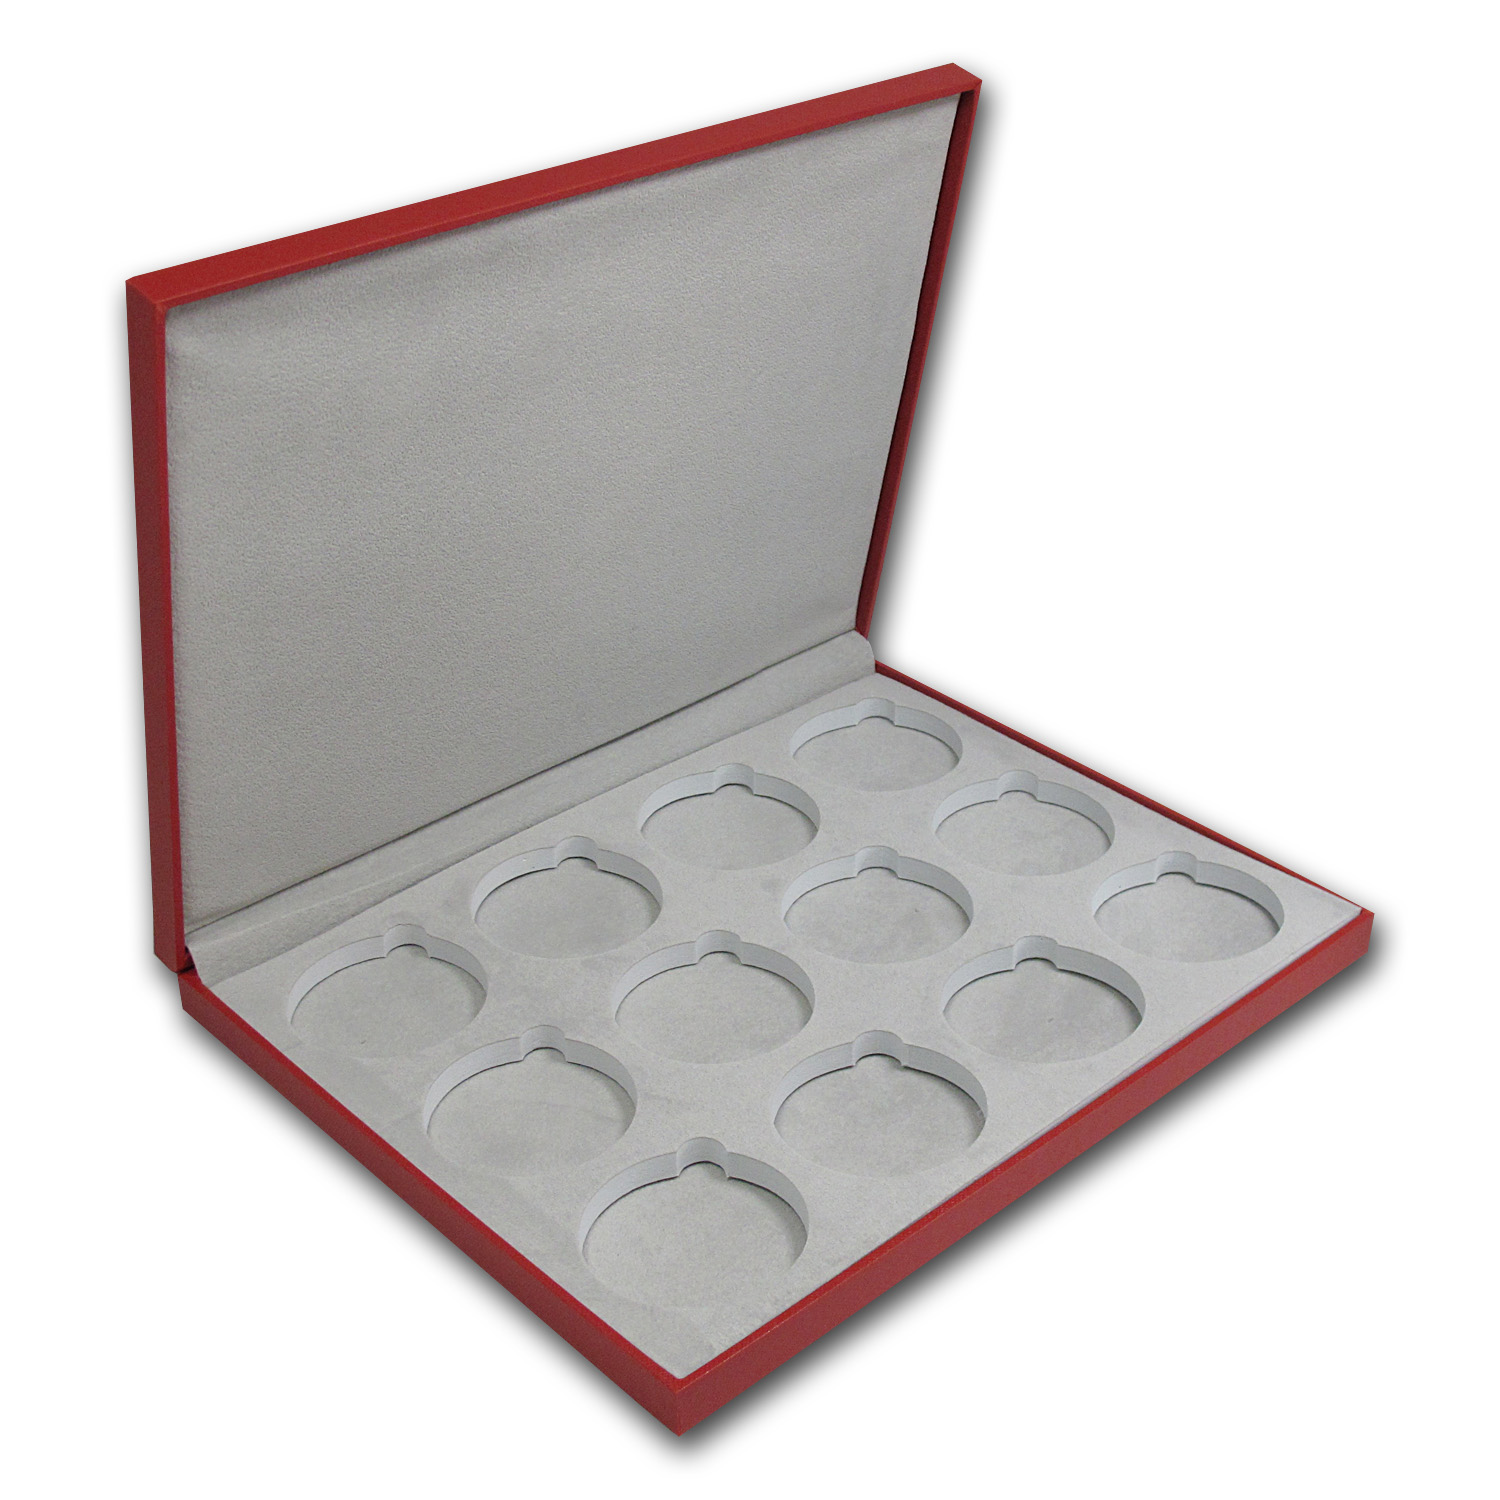 Lunar Series II (2 oz Silver) 12 coin Red Presentation Box